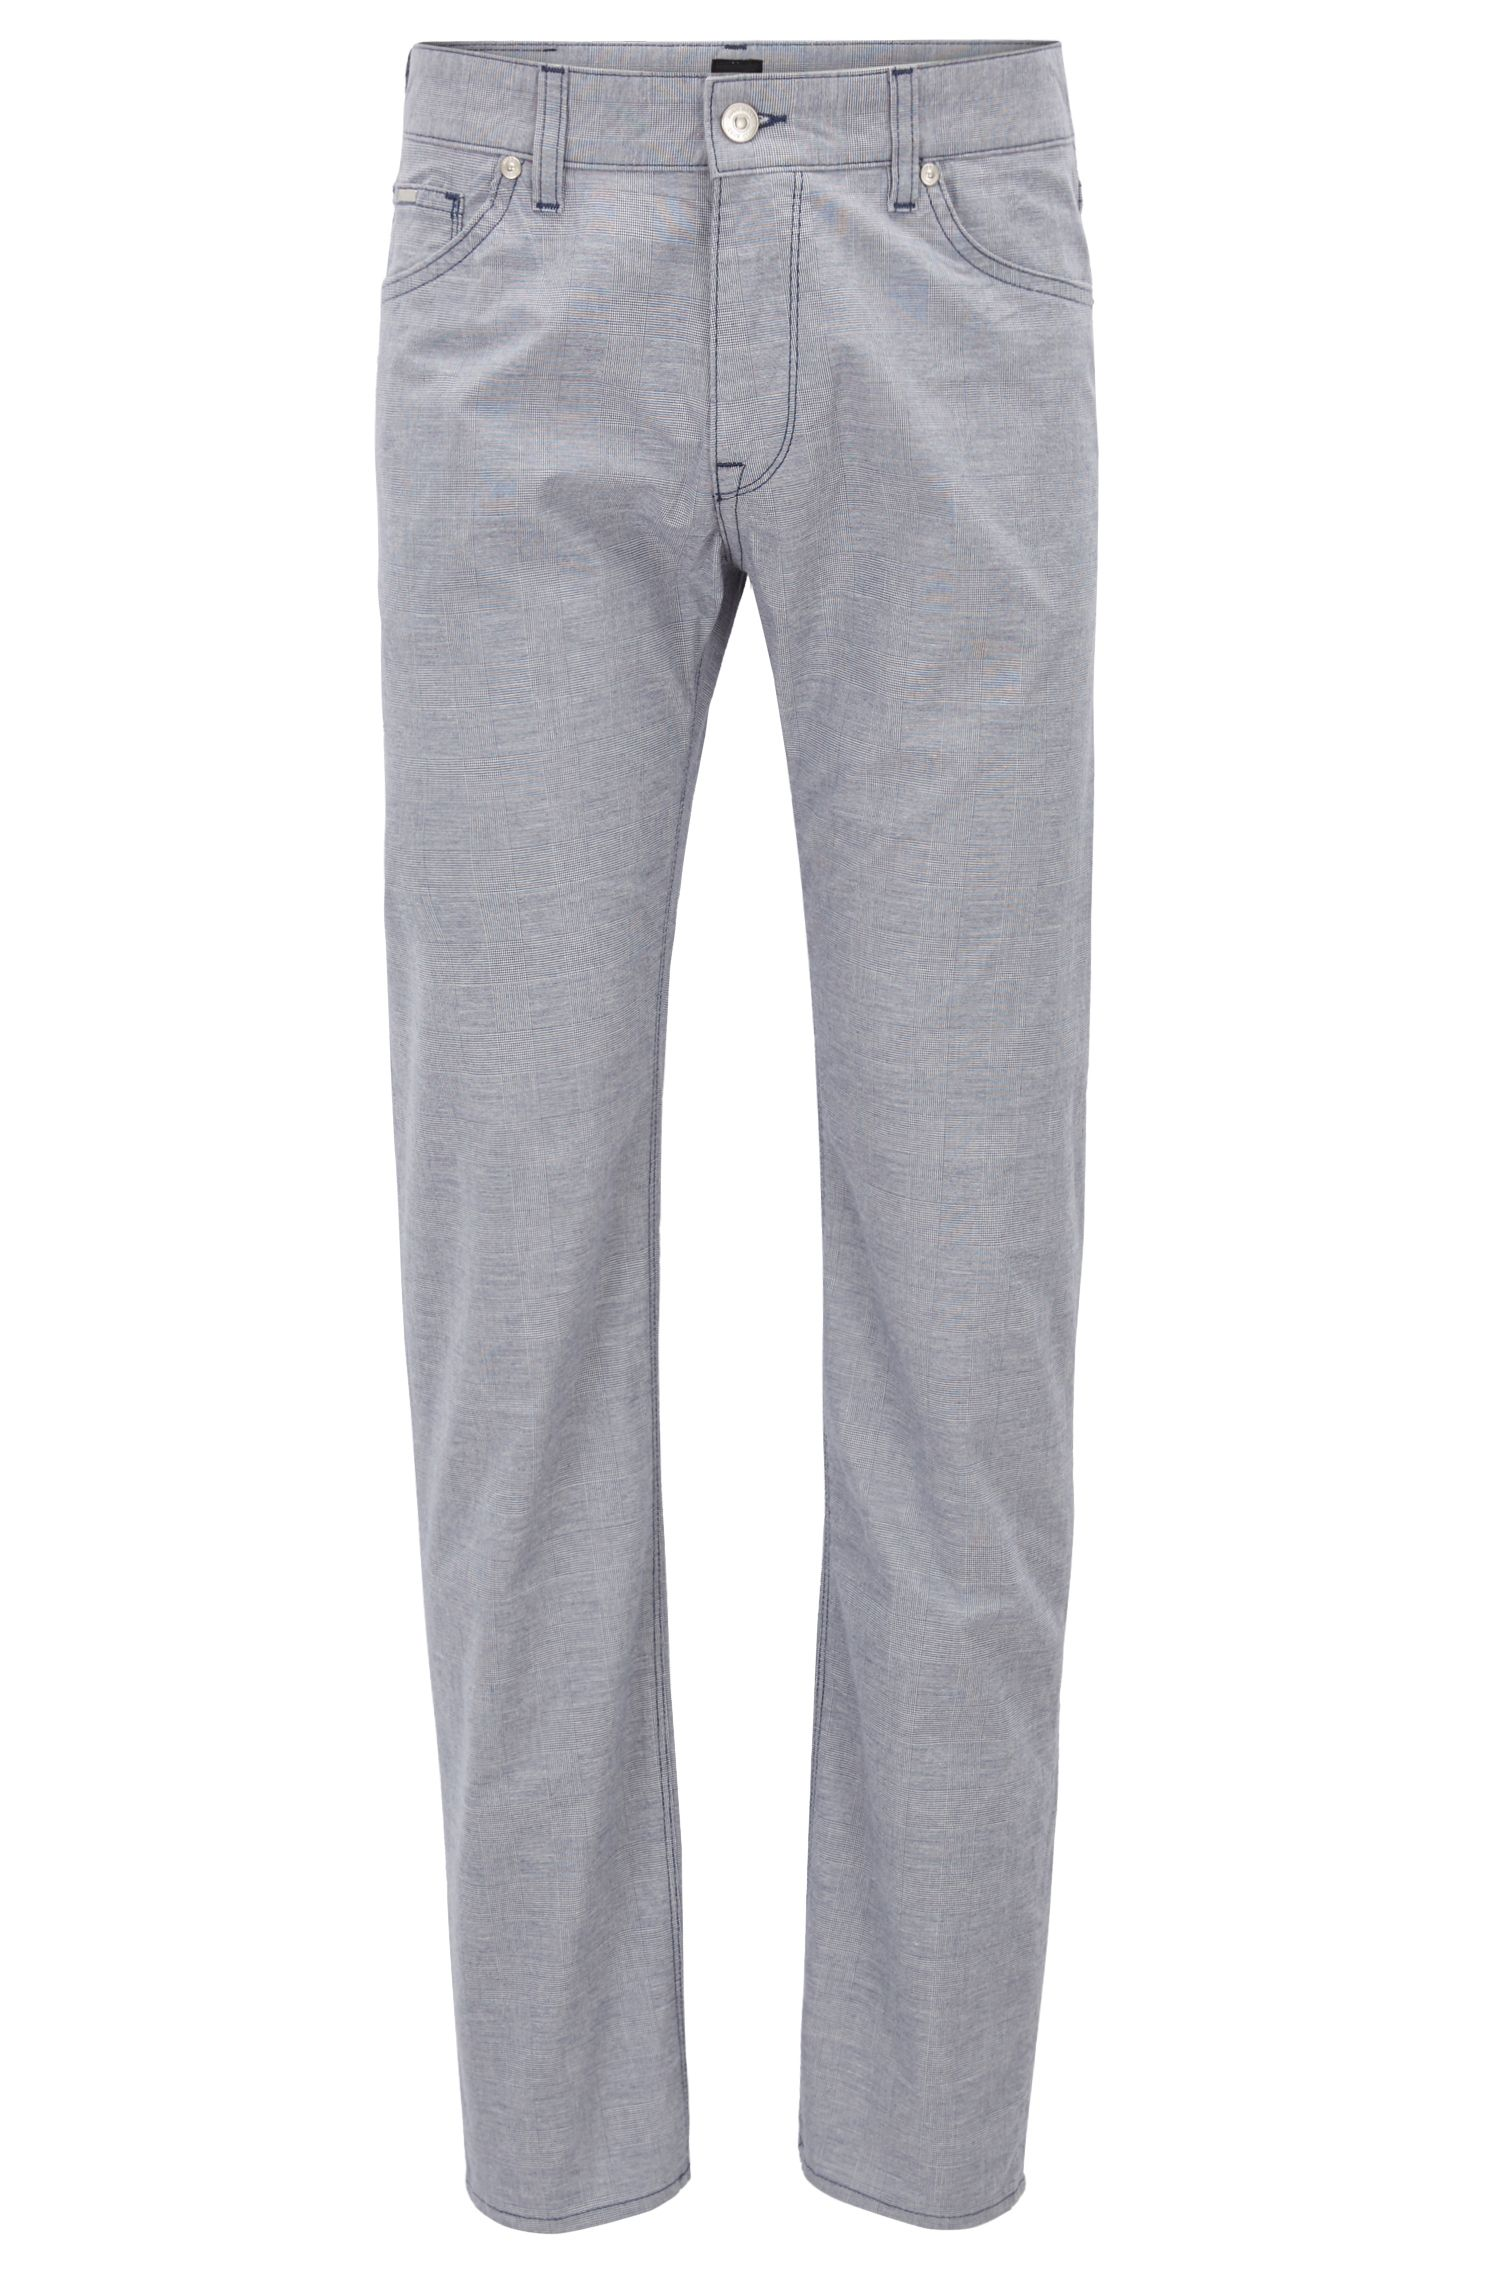 Regular-fit jeans in Glen-check stretch cotton, Open Blue